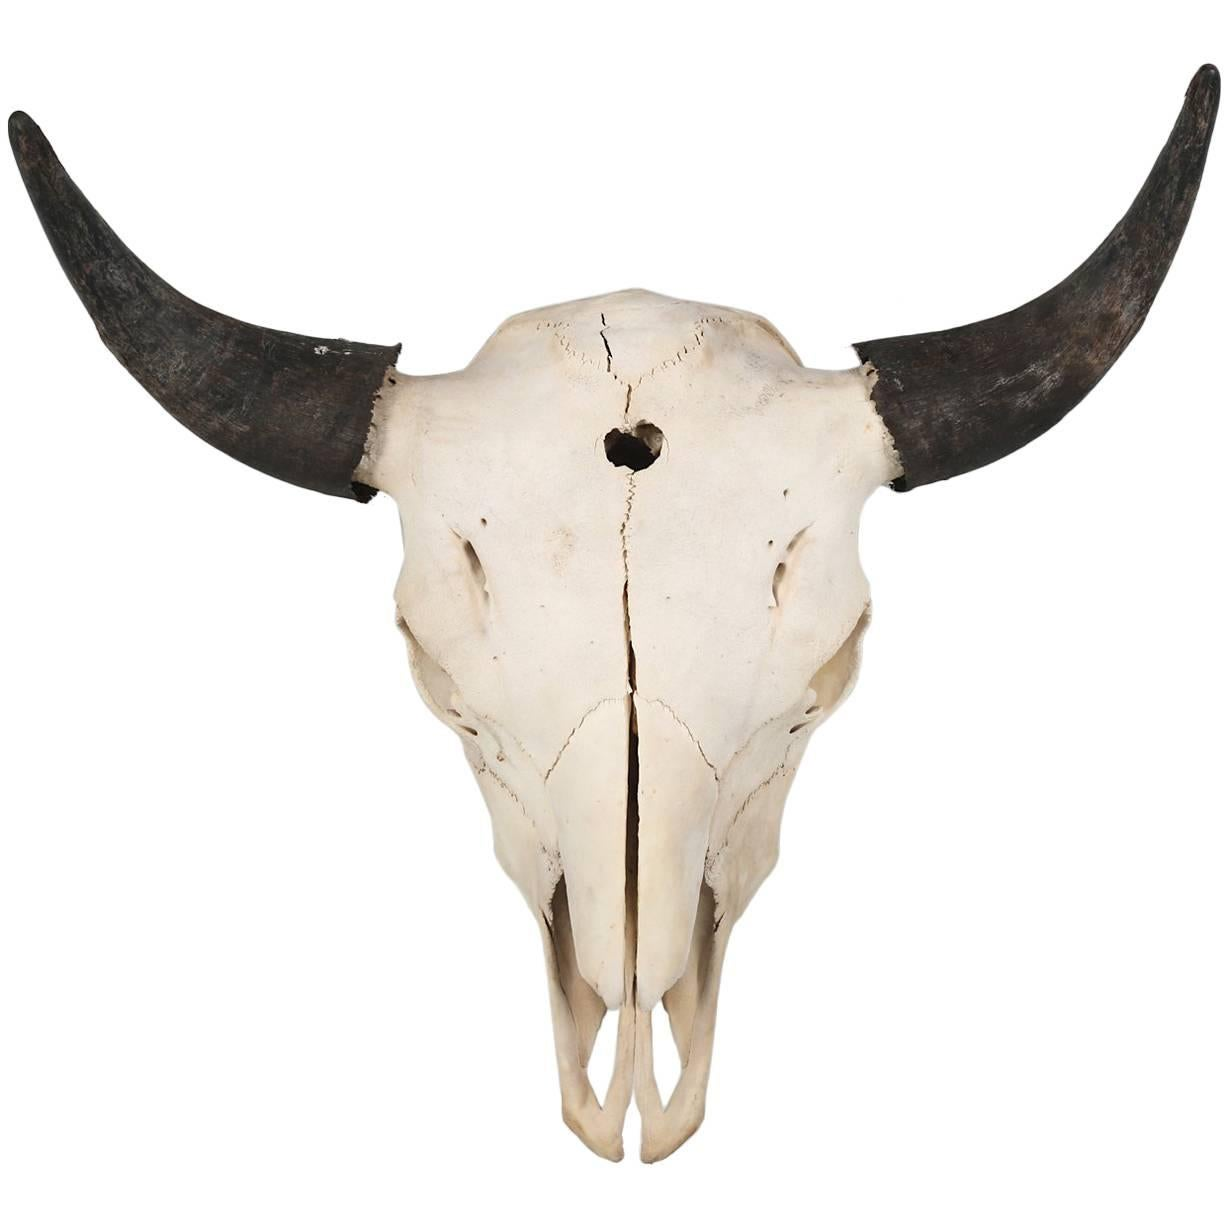 Large Authentic Bull or Steer Skull from New Mexico